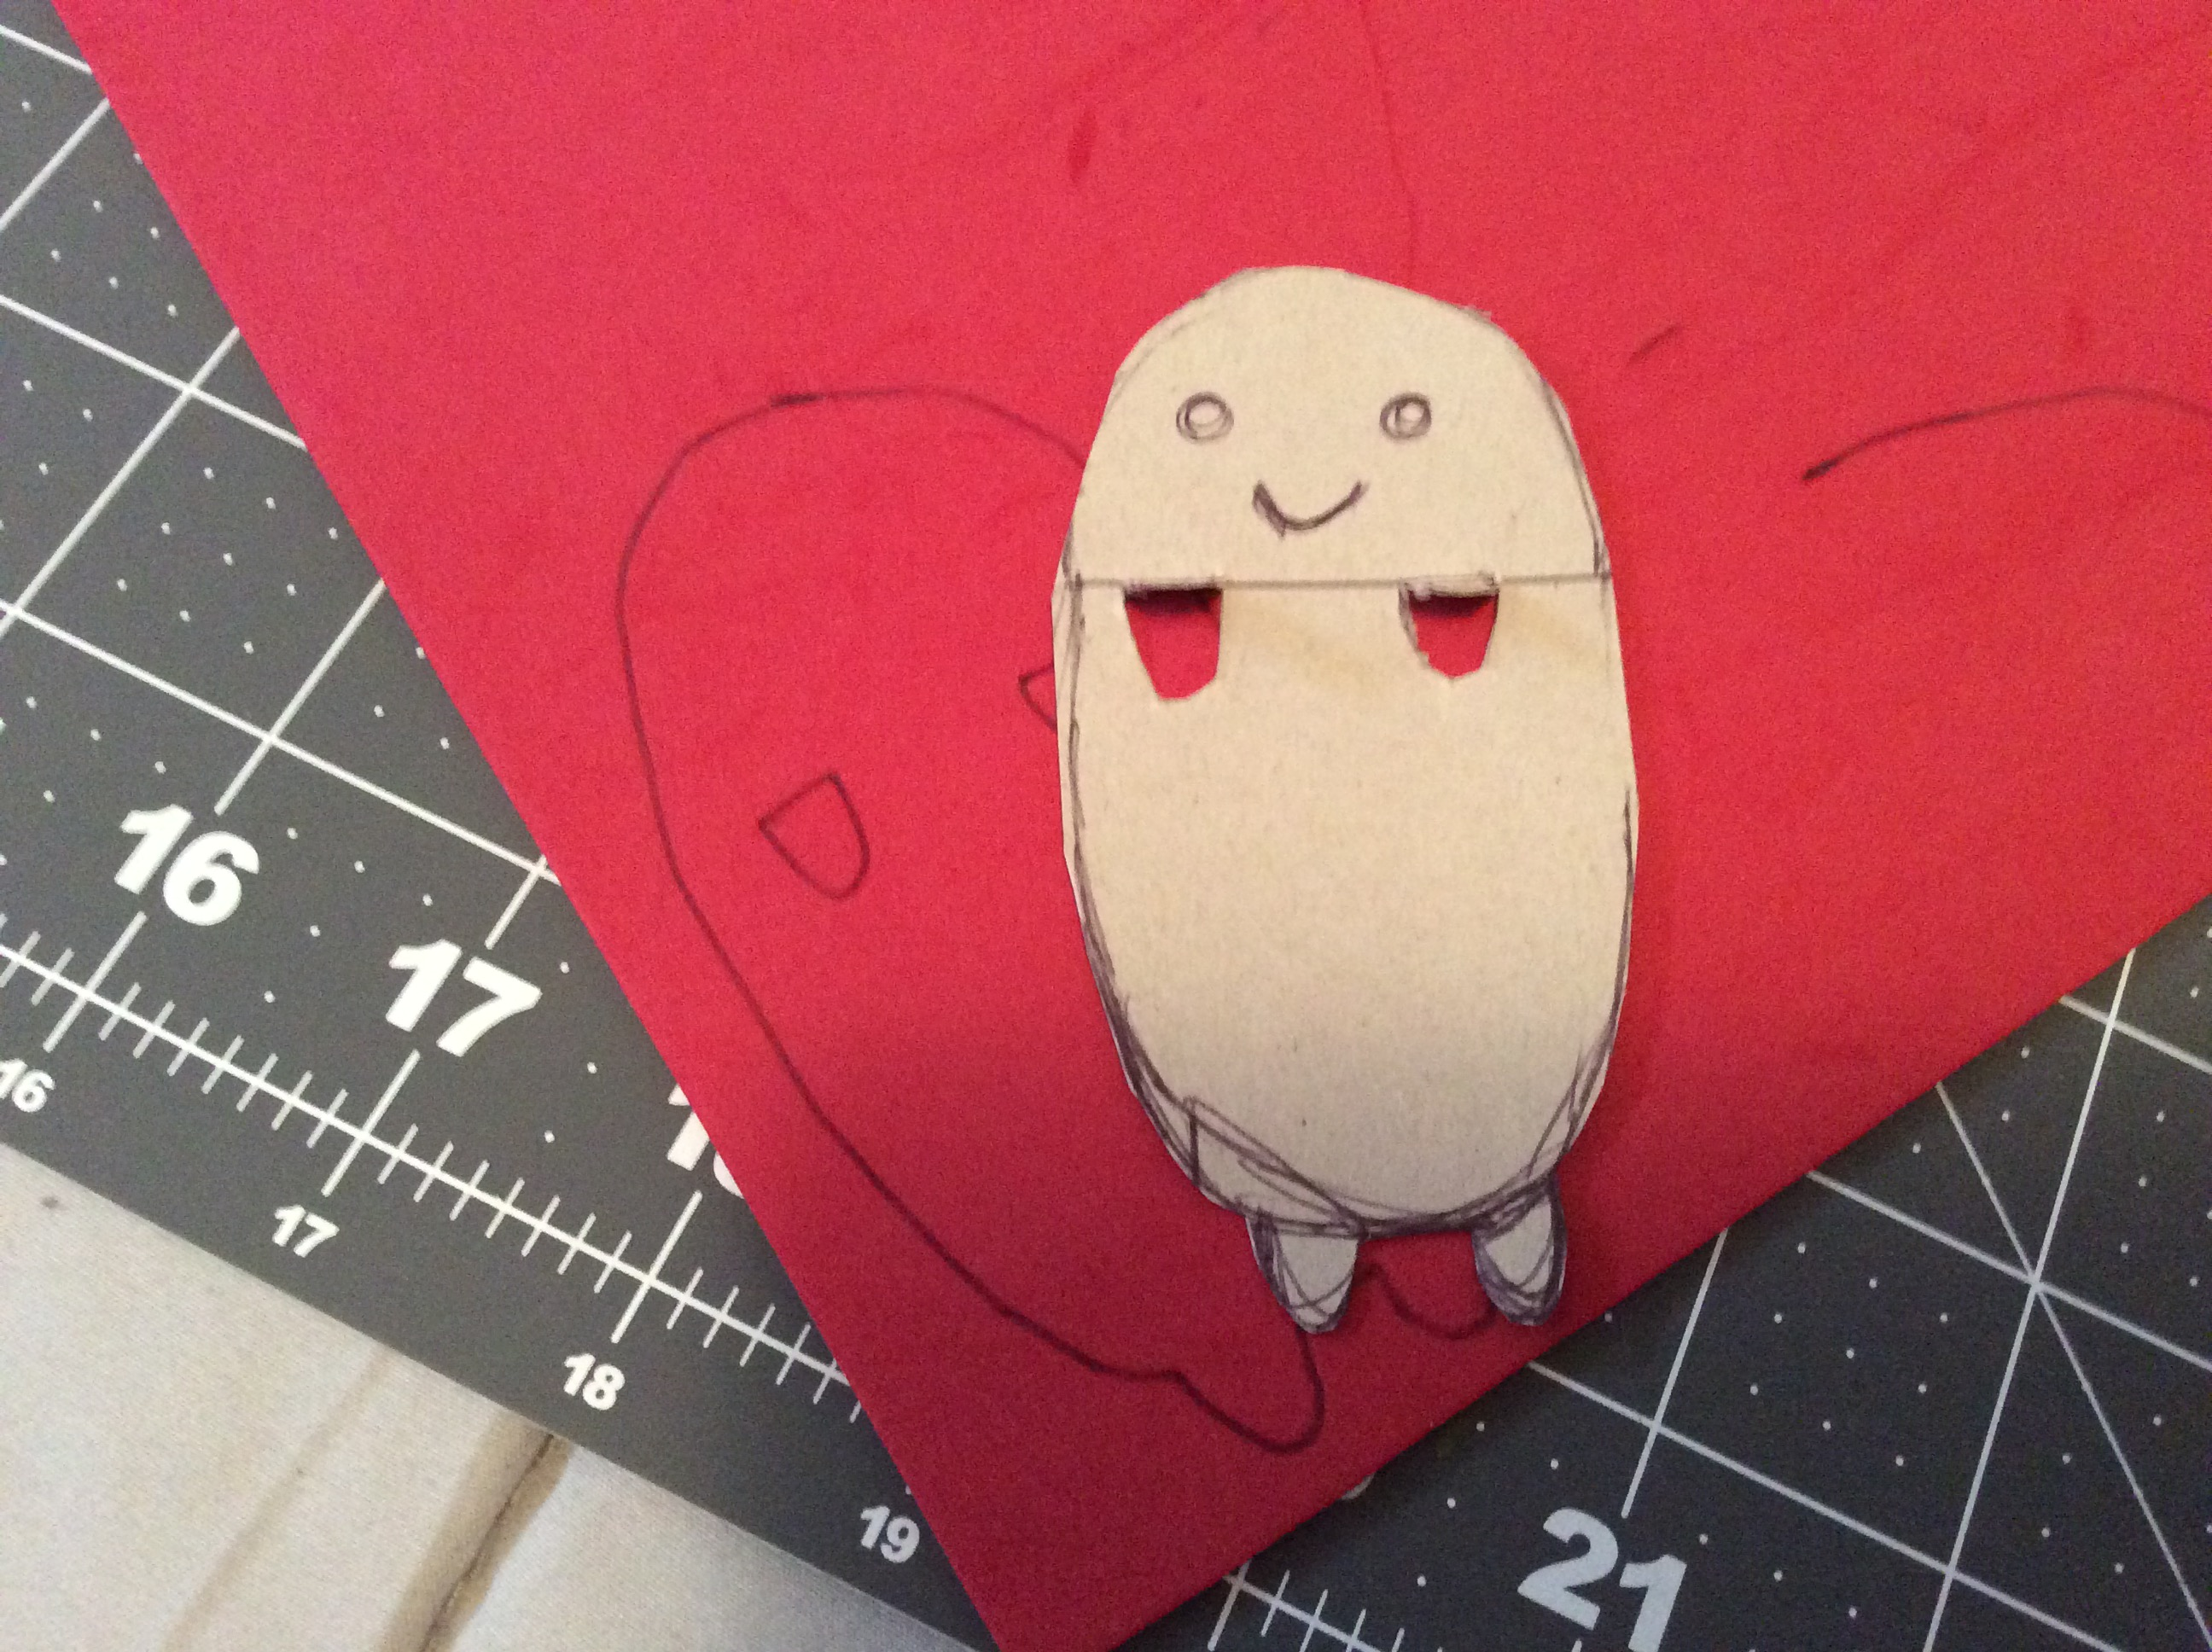 Take Your Extra Craft From And Cut Out A Little Friend To Hang In The Pocket With Pens Pencils Use Sharpie Or Paint Him Face